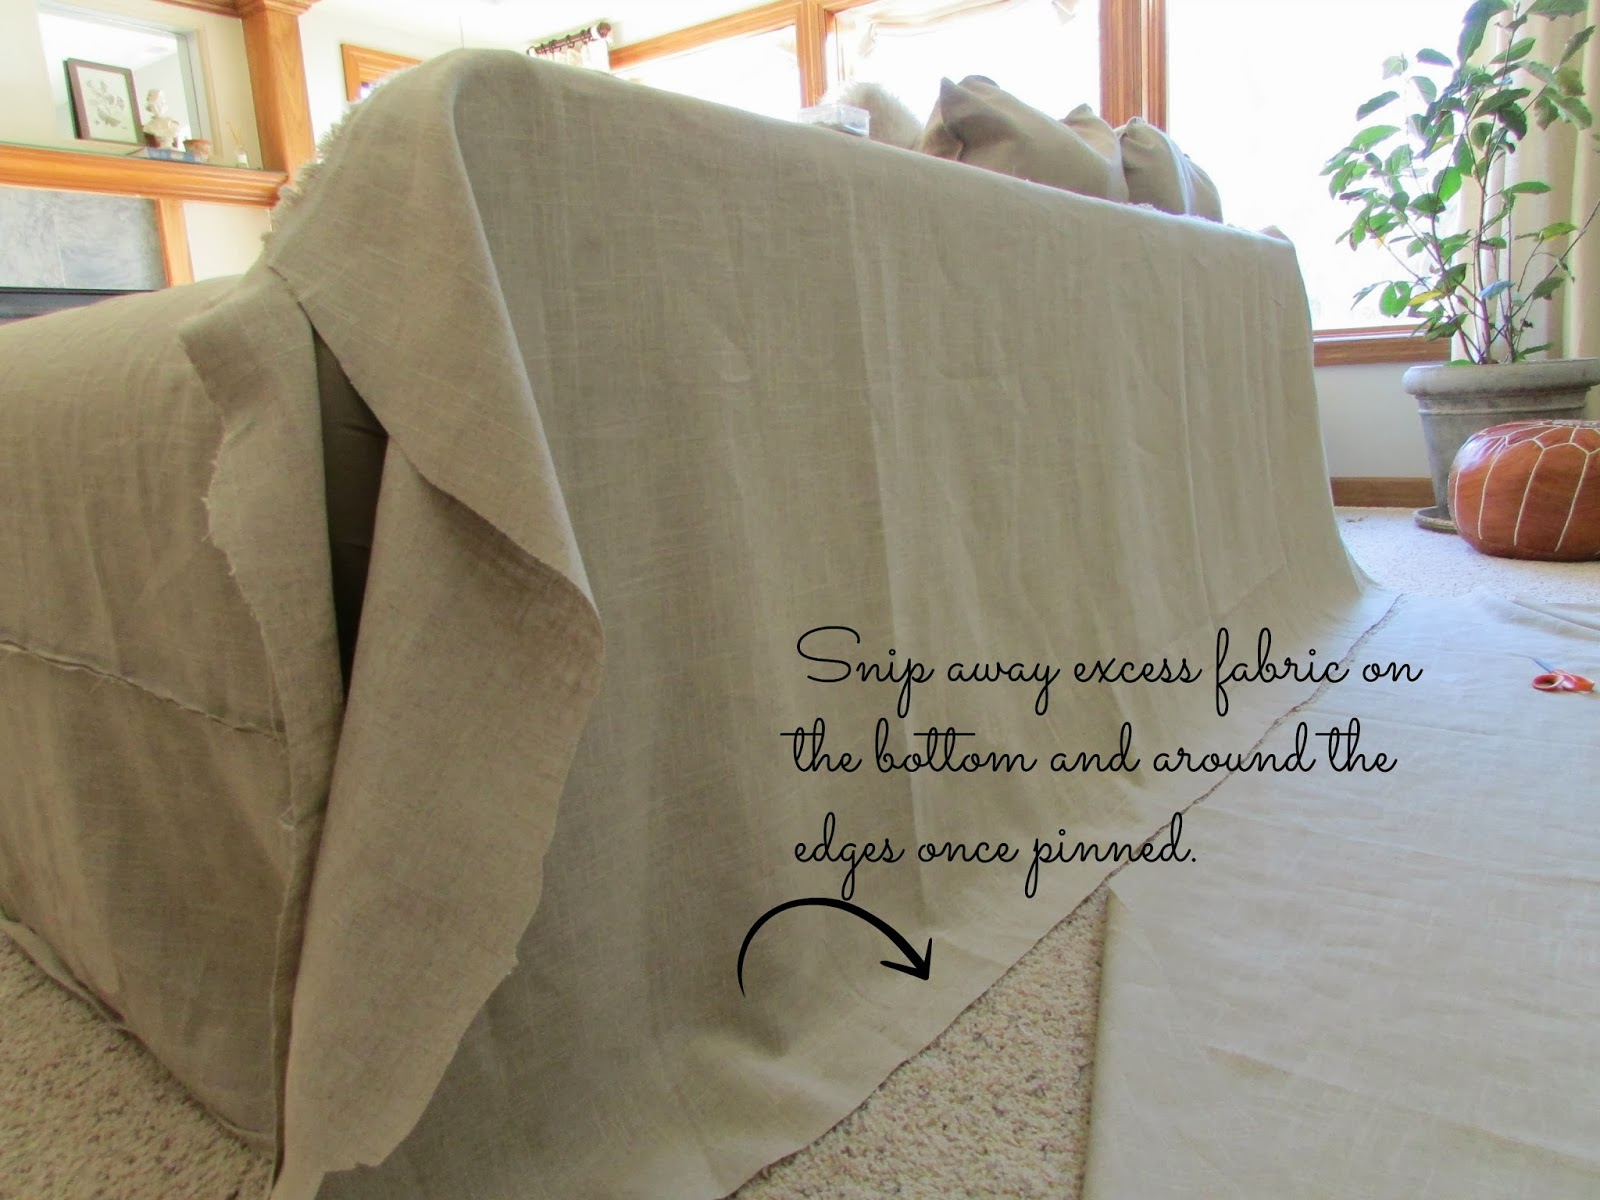 SimplyLinen Linen Slipcovered Couch Tutorial